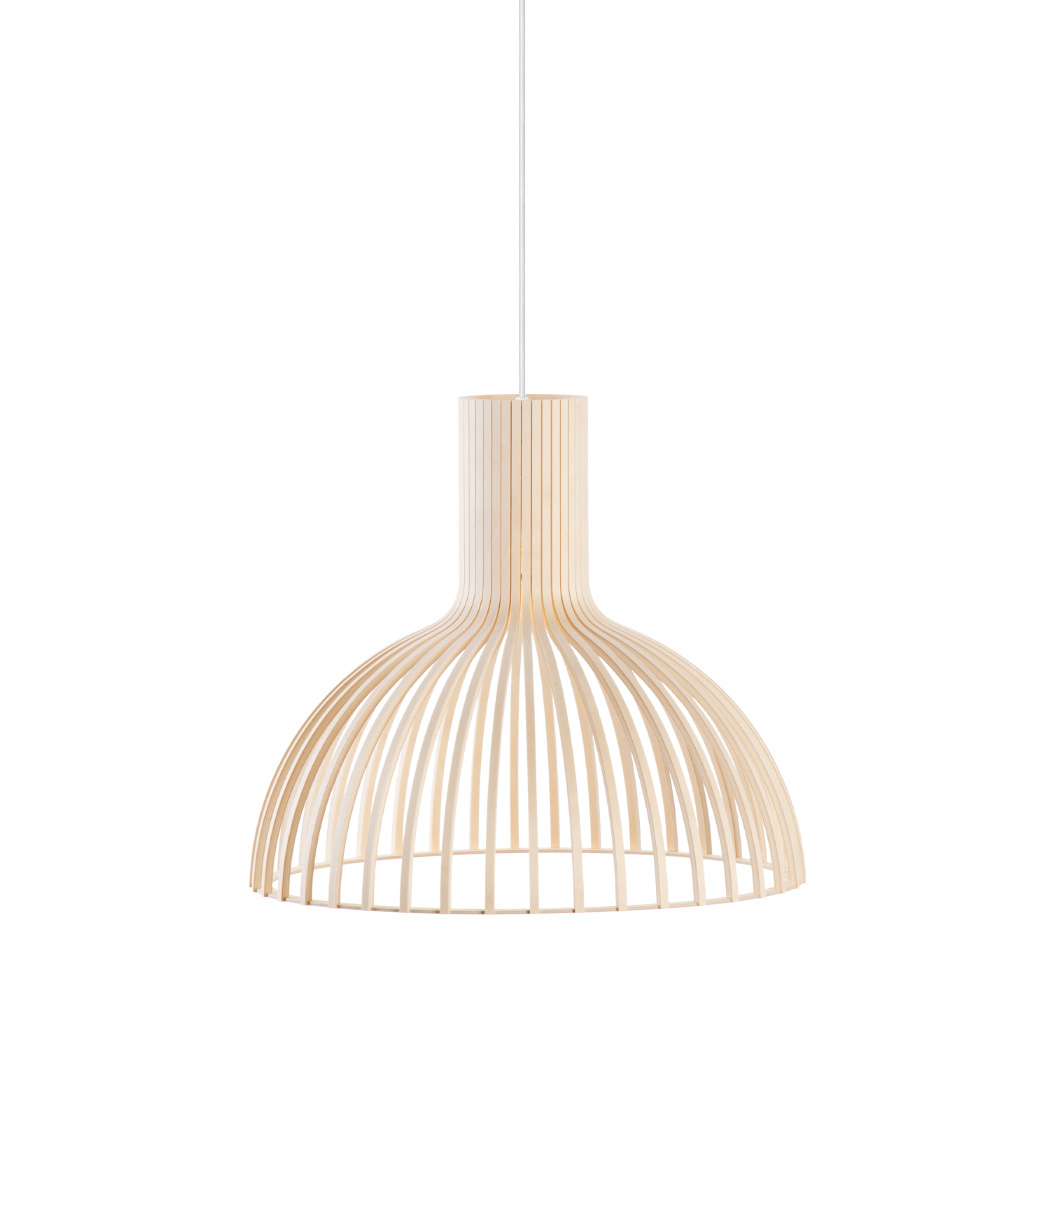 Victo Small 4251 pendant lamp color birch